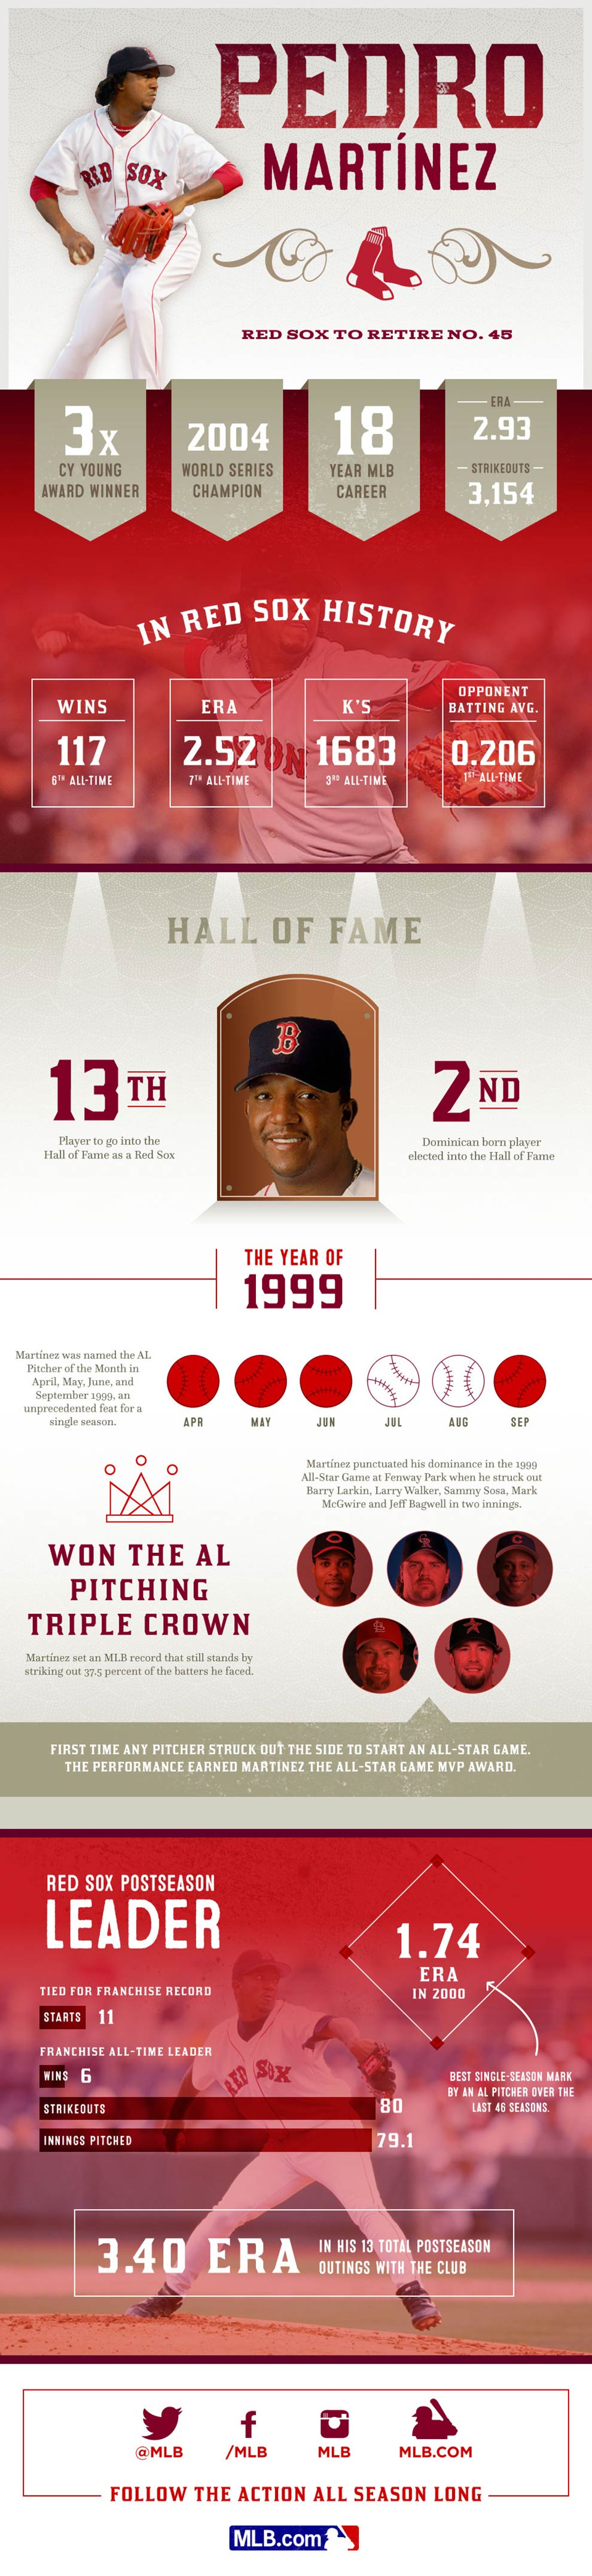 [INFOGRAPHIC] #PedroHOF: A look back at Pedro Martinez's Hall-of-Fame career